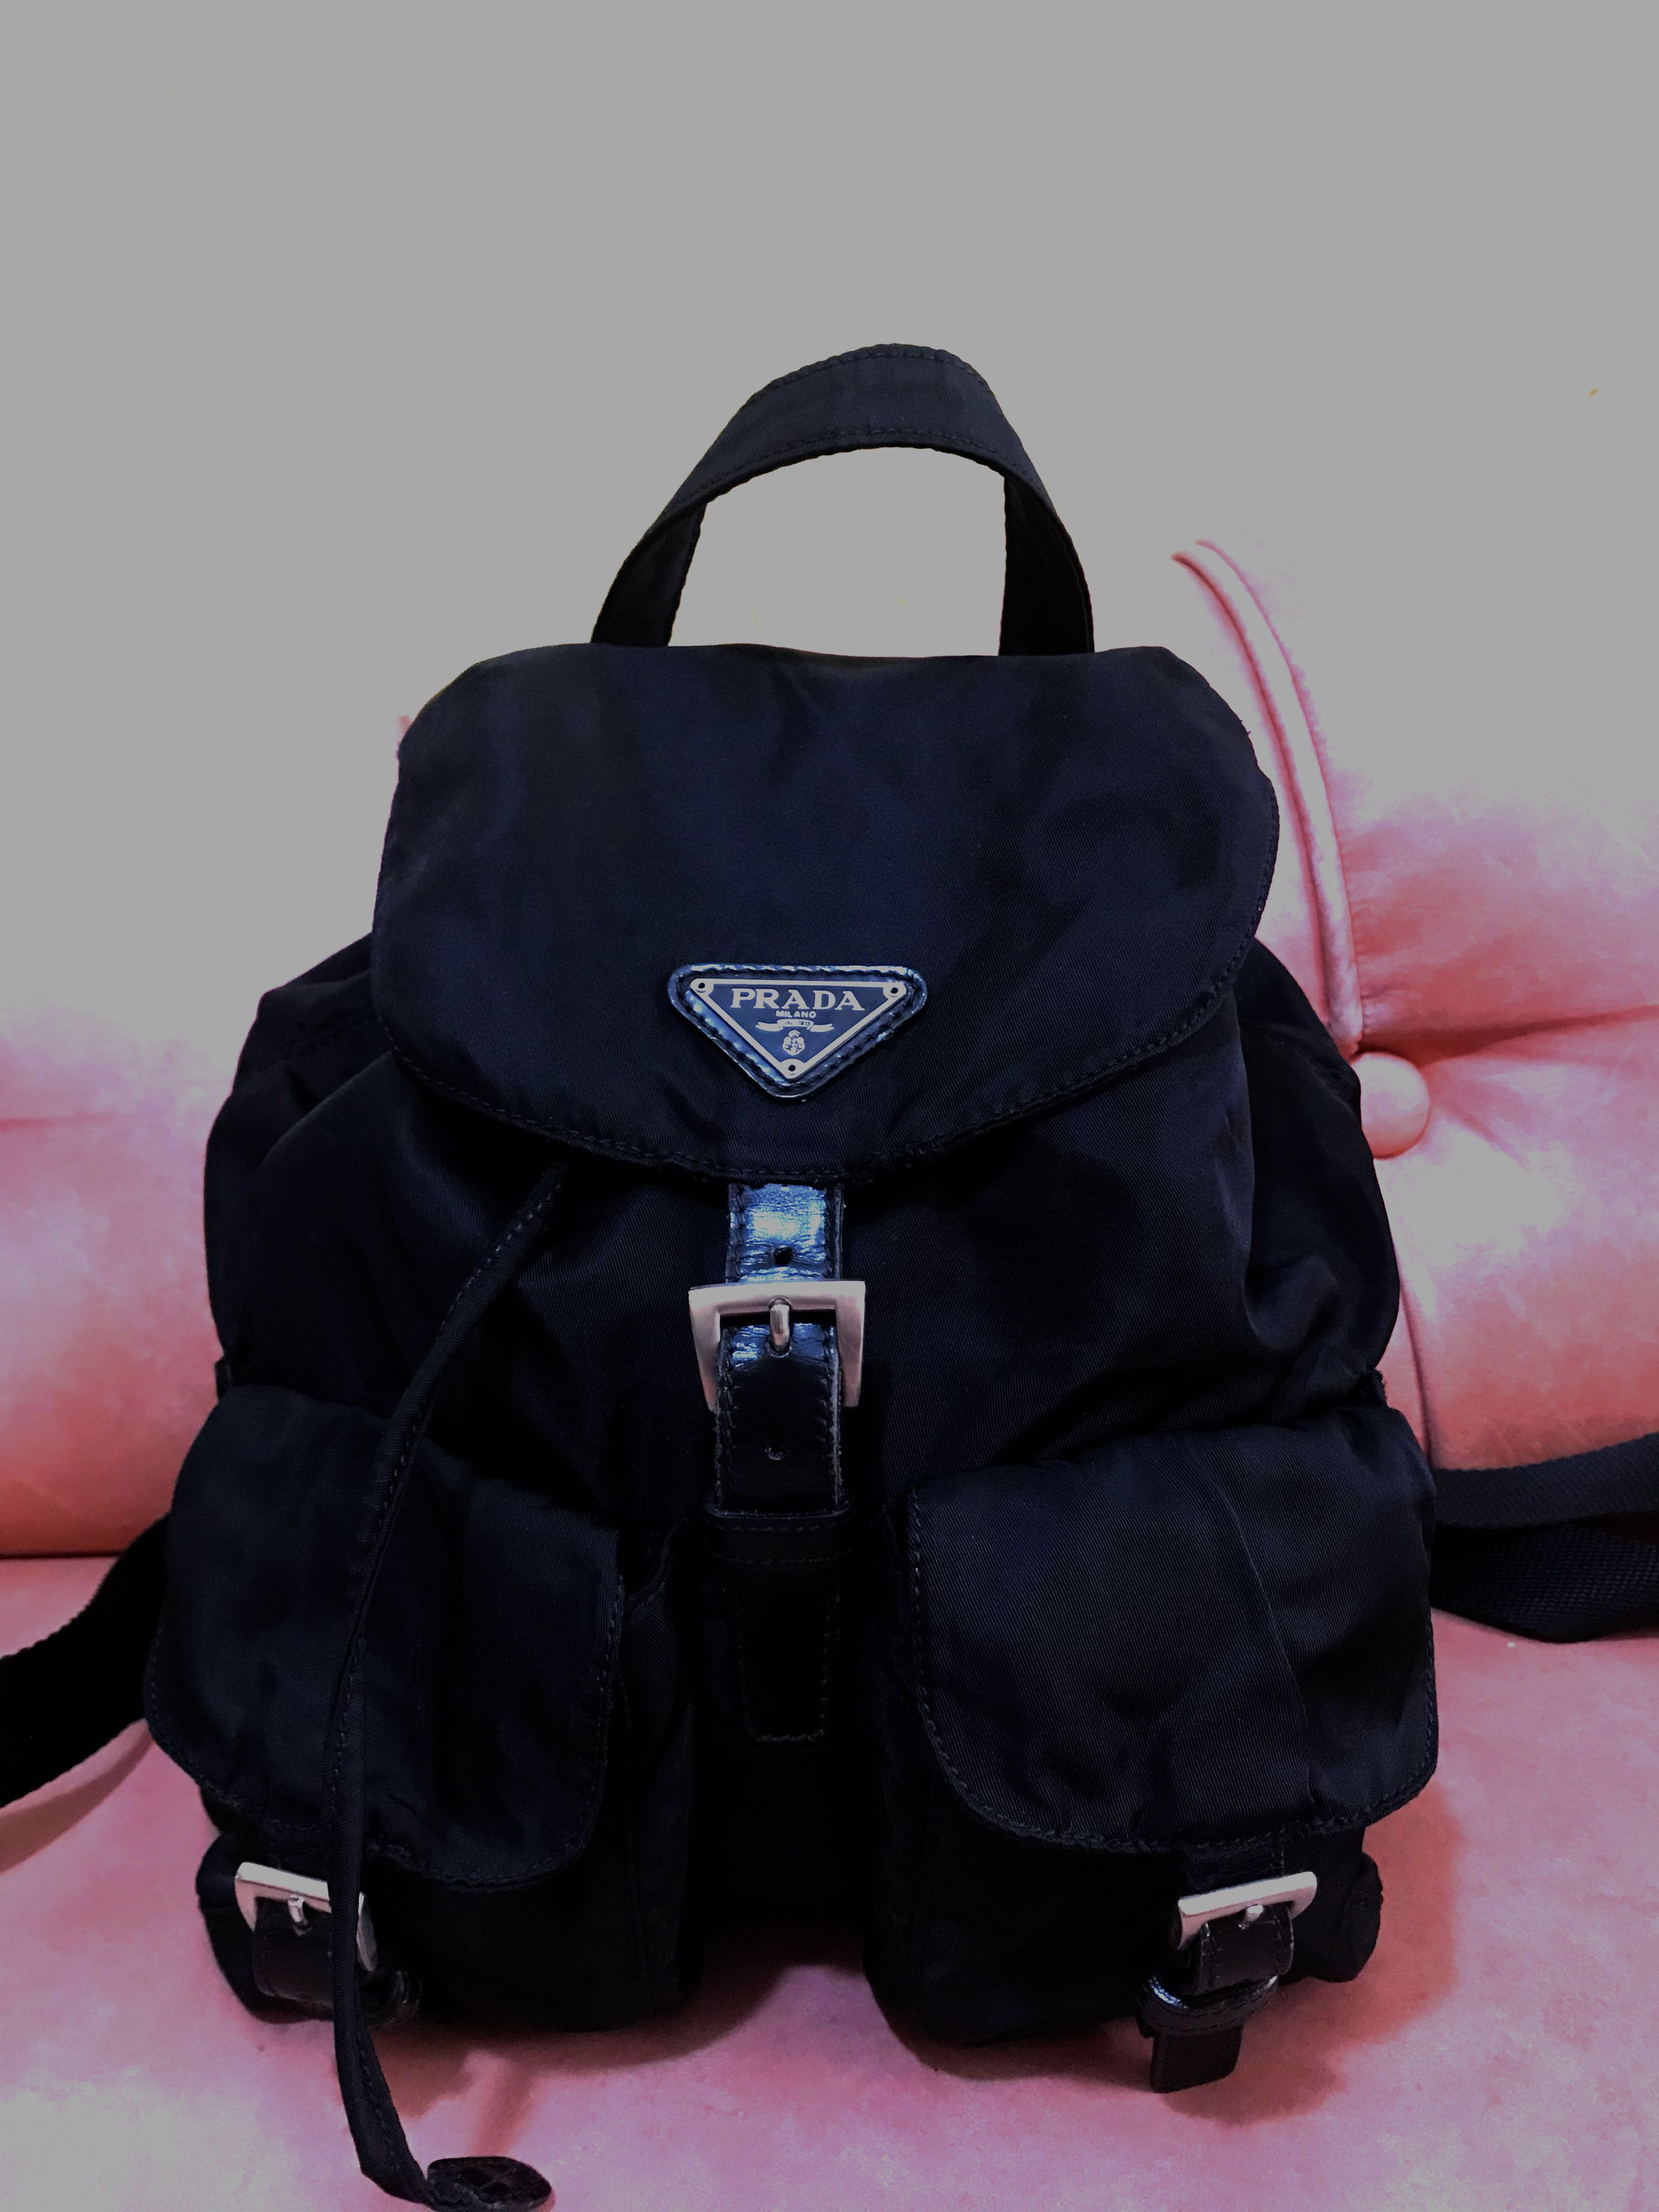 716a70c1c359 Flash sale! Authentic Prada Backpack